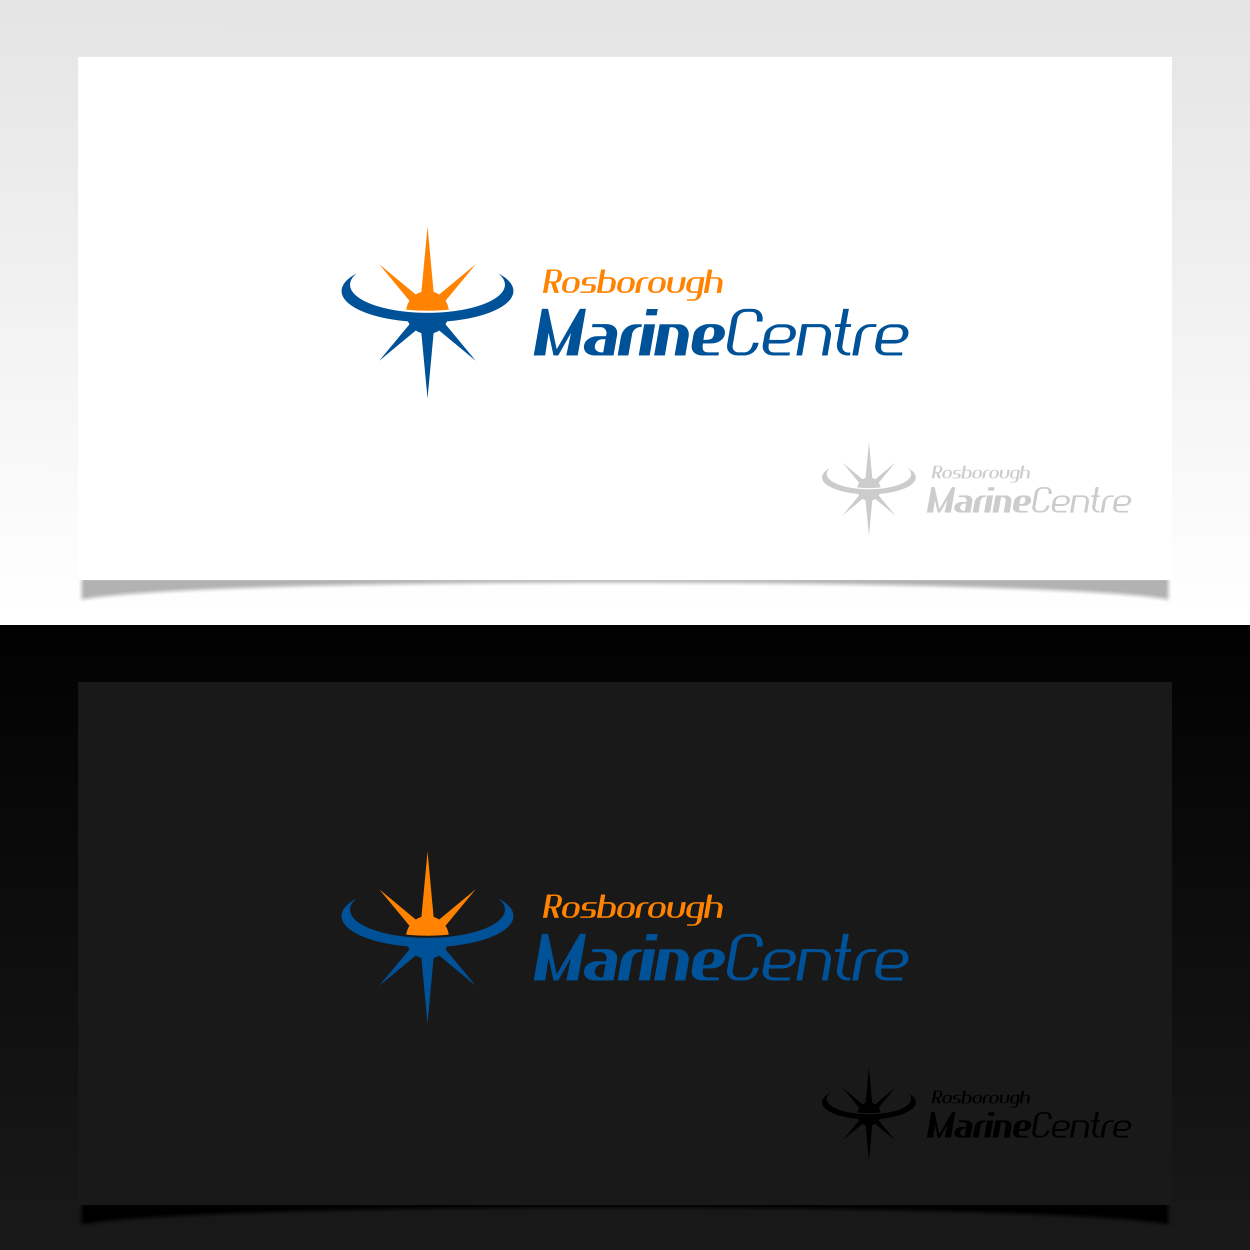 Logo Design by EmLiam - Entry No. 100 in the Logo Design Contest Rosborough Marine Centre Logo Design.